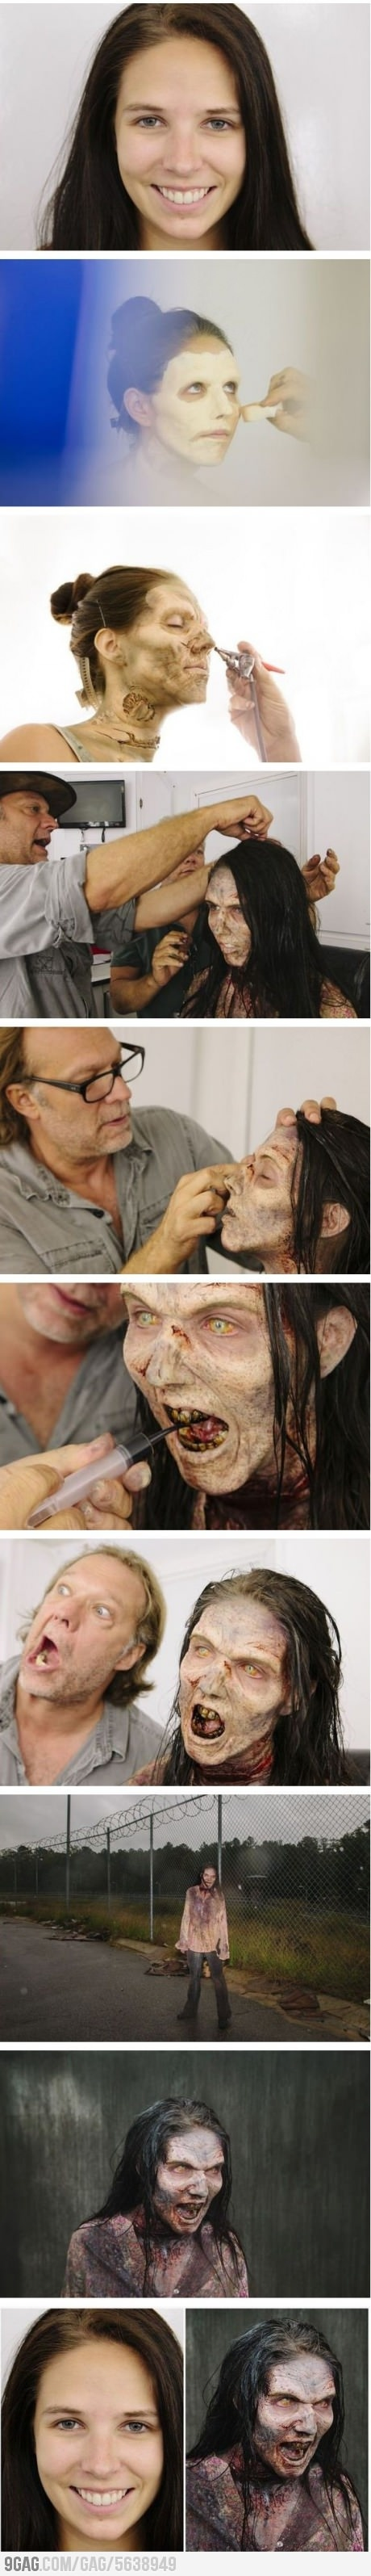 The Making Of A Zombie From 'The Walking Dead'